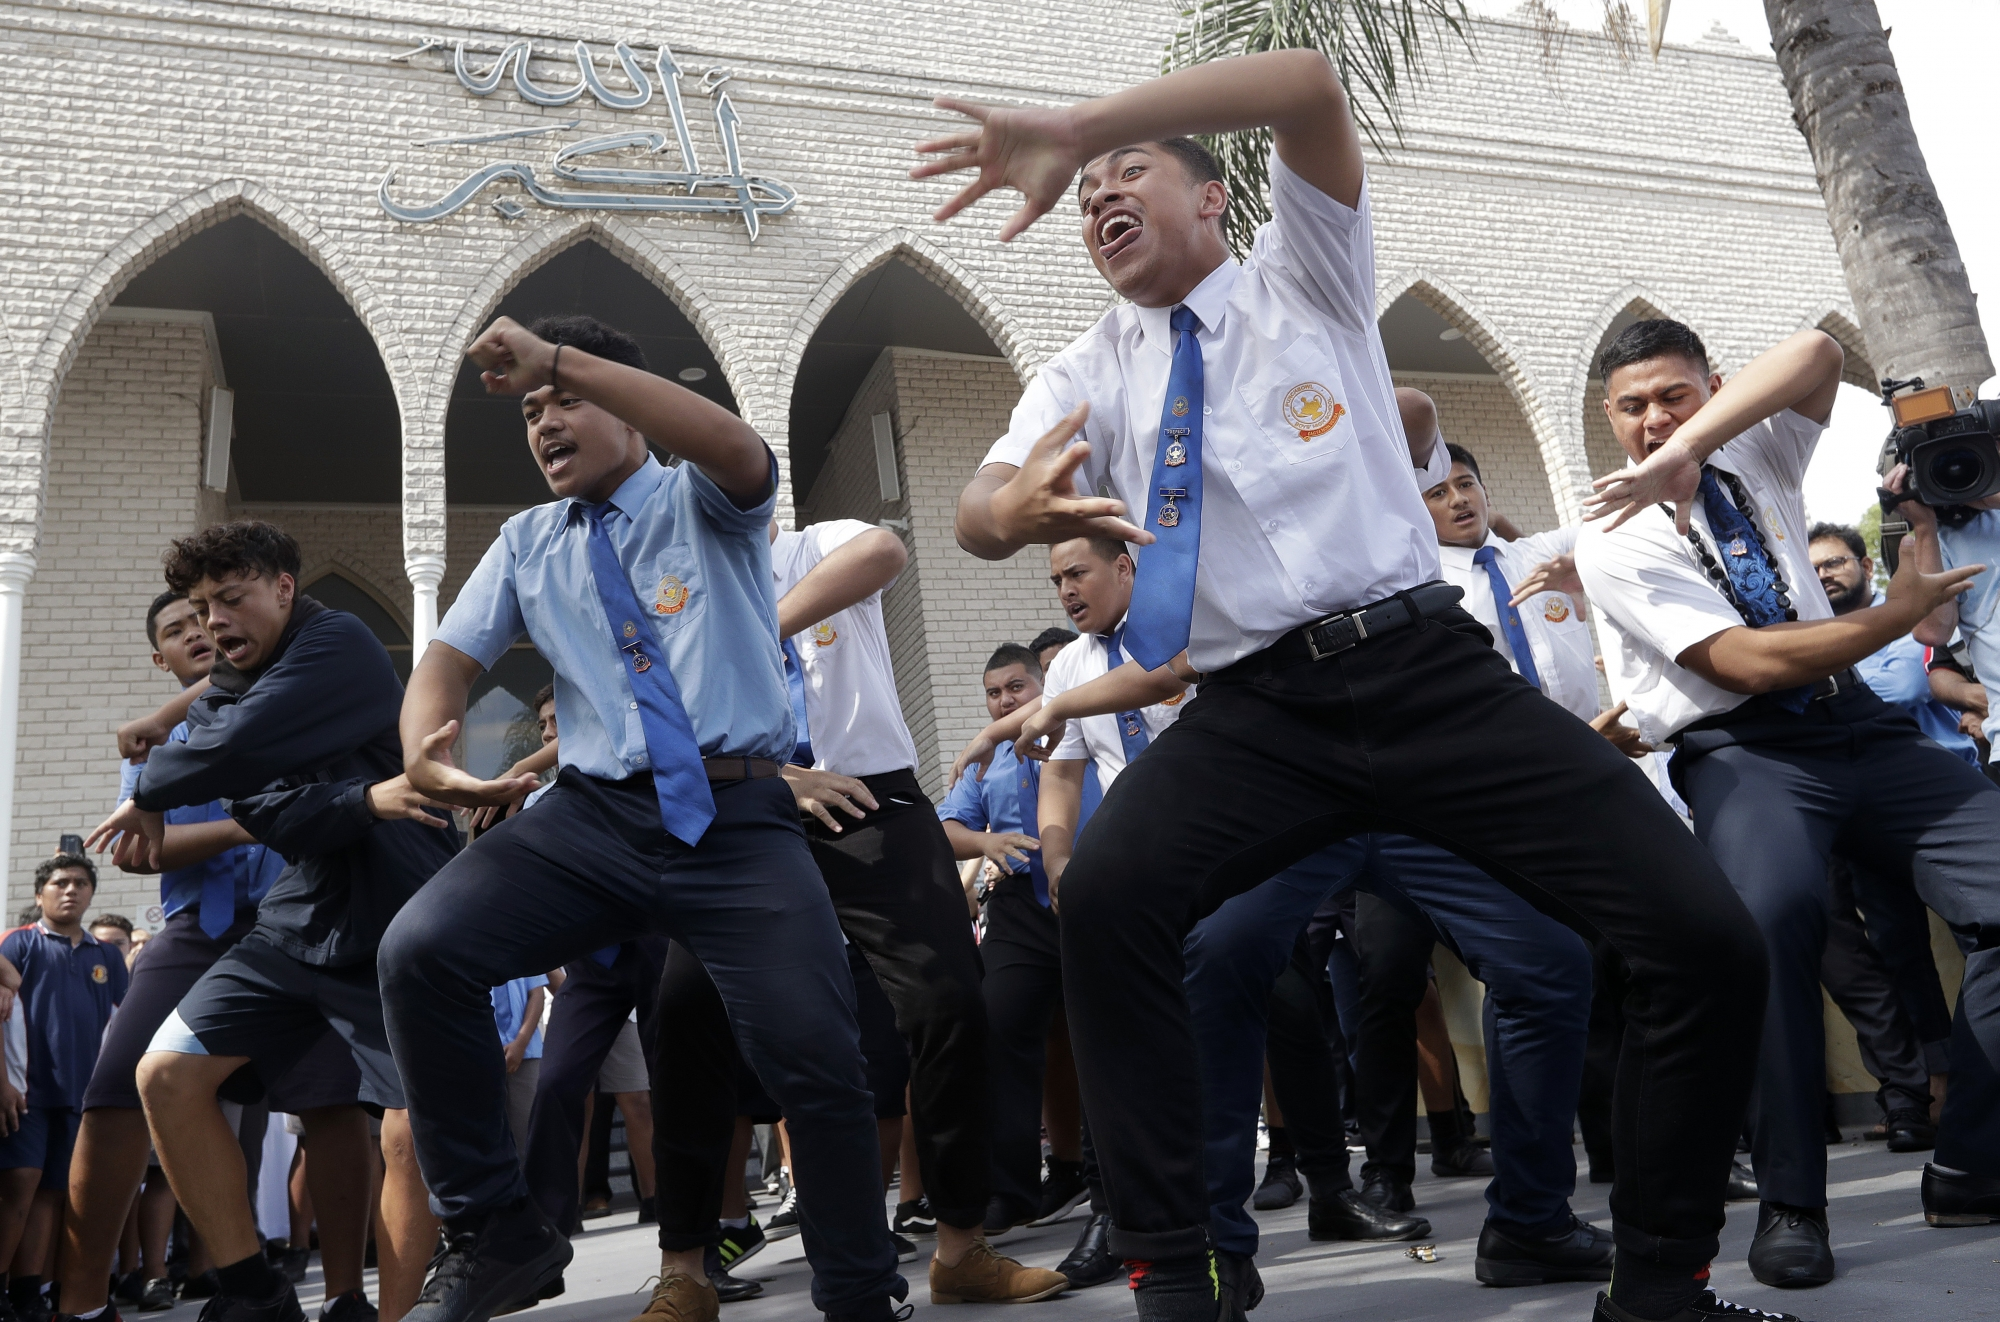 New Zealand Mosque Shooting Gallery: 'Rise Up!' NZ Students Heal With Haka After Mosque Attacks